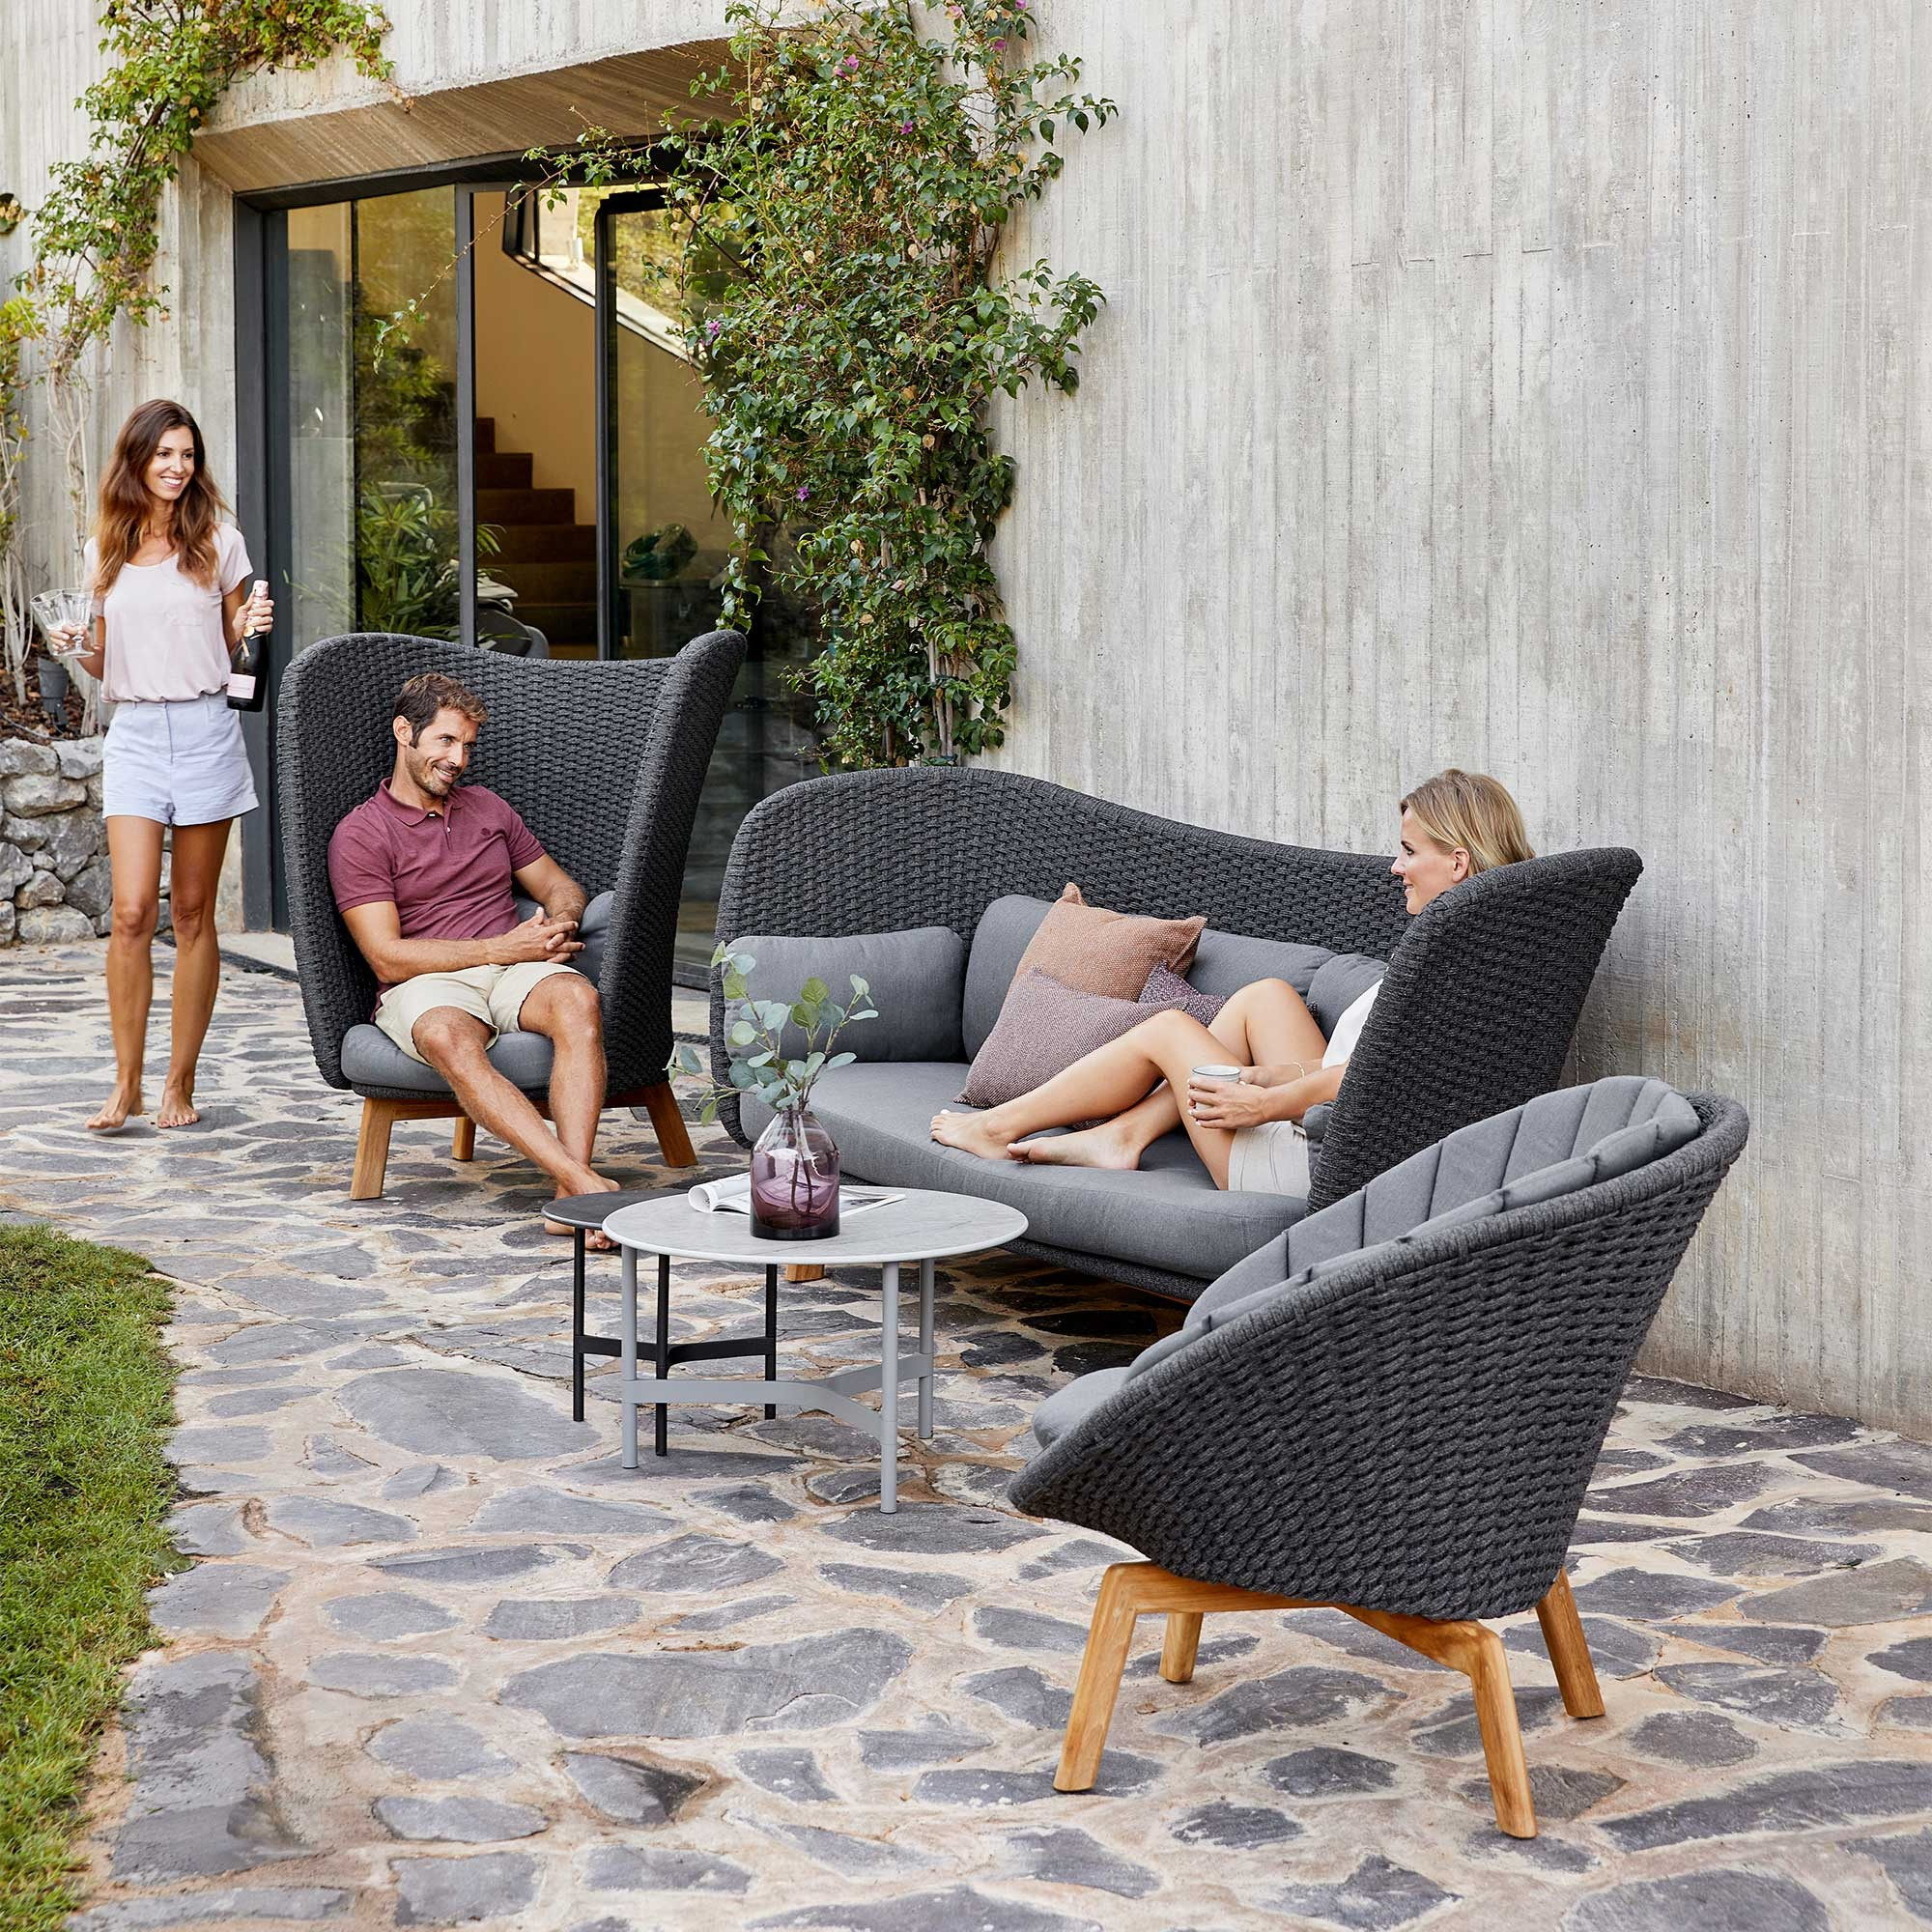 Lounge Sofa 2 Sitzer Outdoor Cane-line Peacock Wing Outdoor Lounge Sofa 3 Seater | Ambientedirect